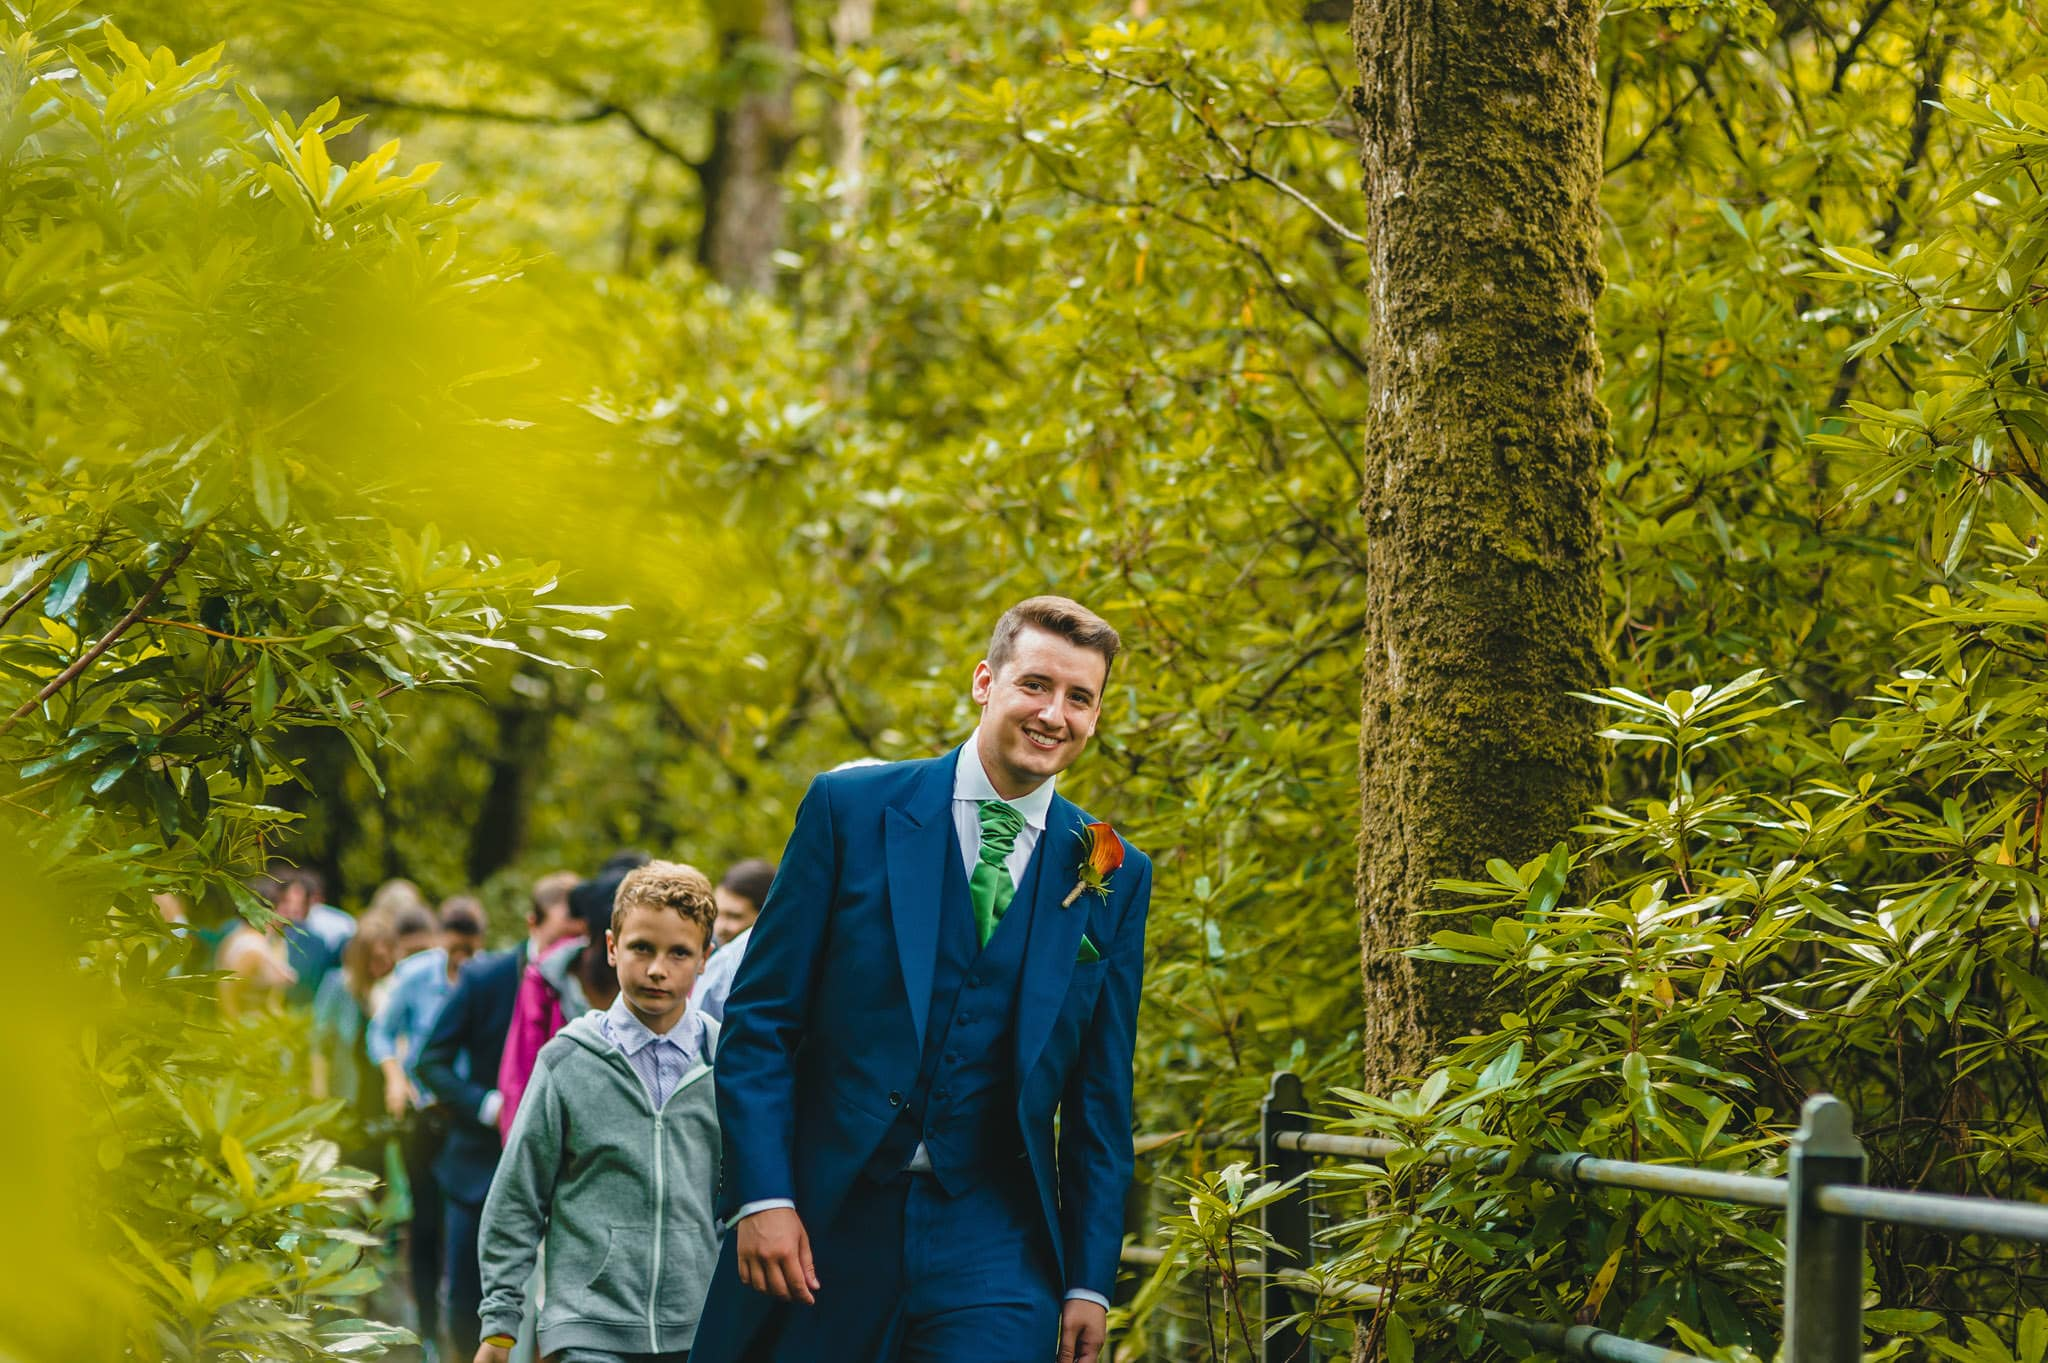 Wedding photography at Y Talbot Hotel in Tregaron, Wales | Tina + Phil 37